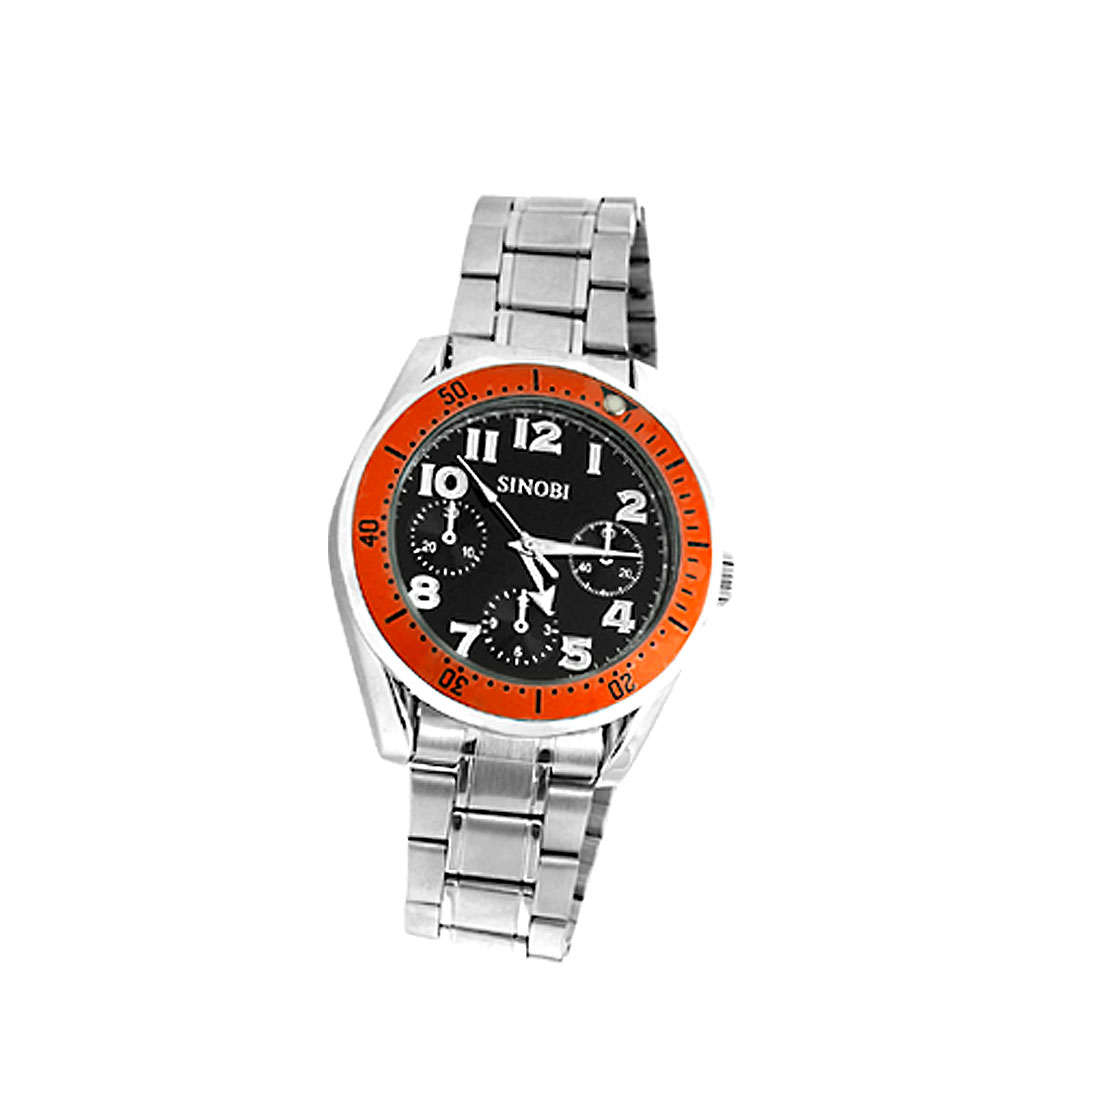 Fashion 3 Small Round Decorative in Dial Metal Band Men's Wrist Watch